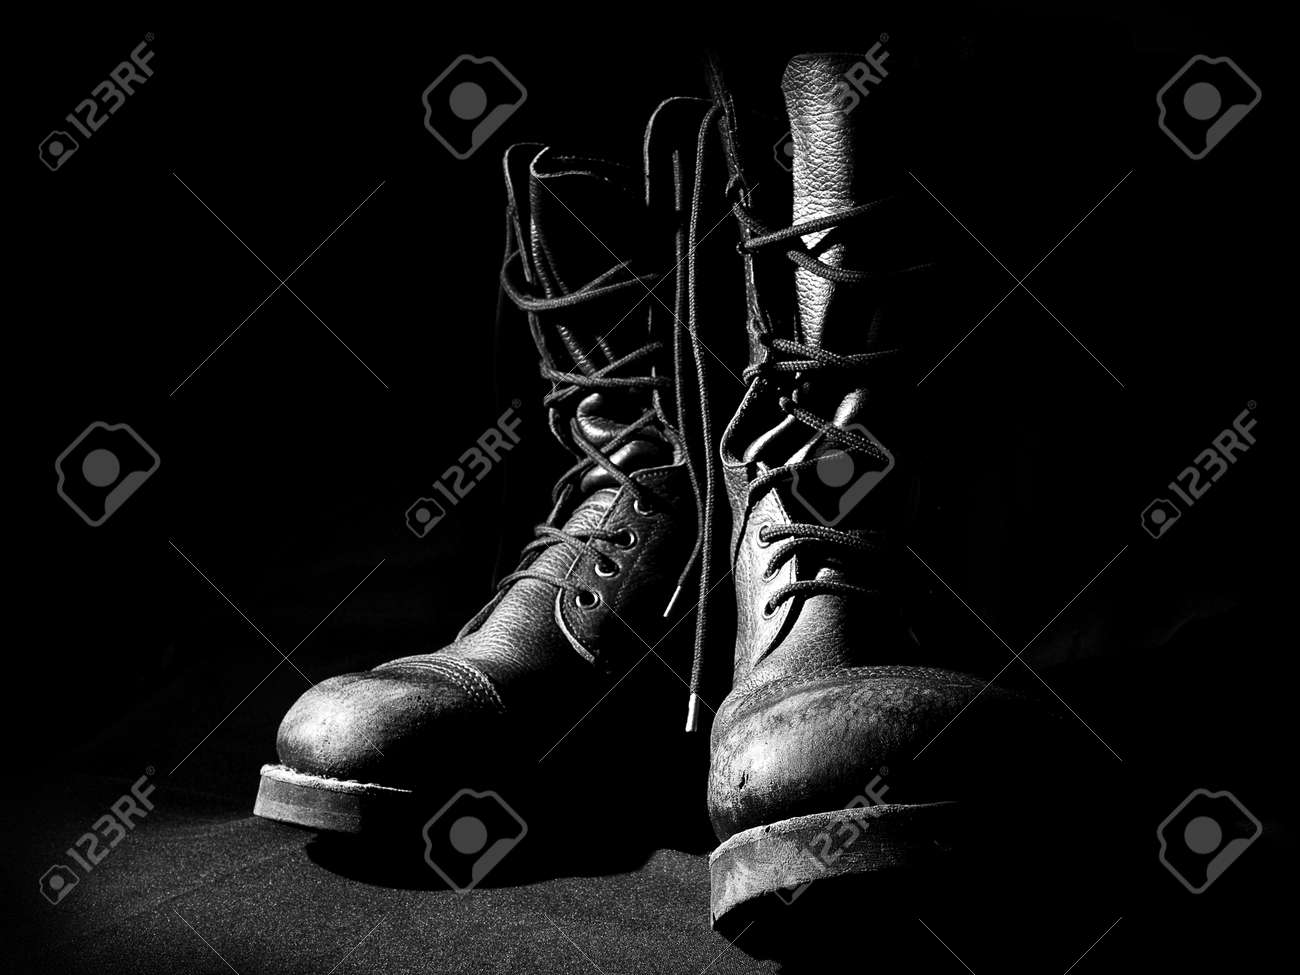 military army boots black background - 58431062